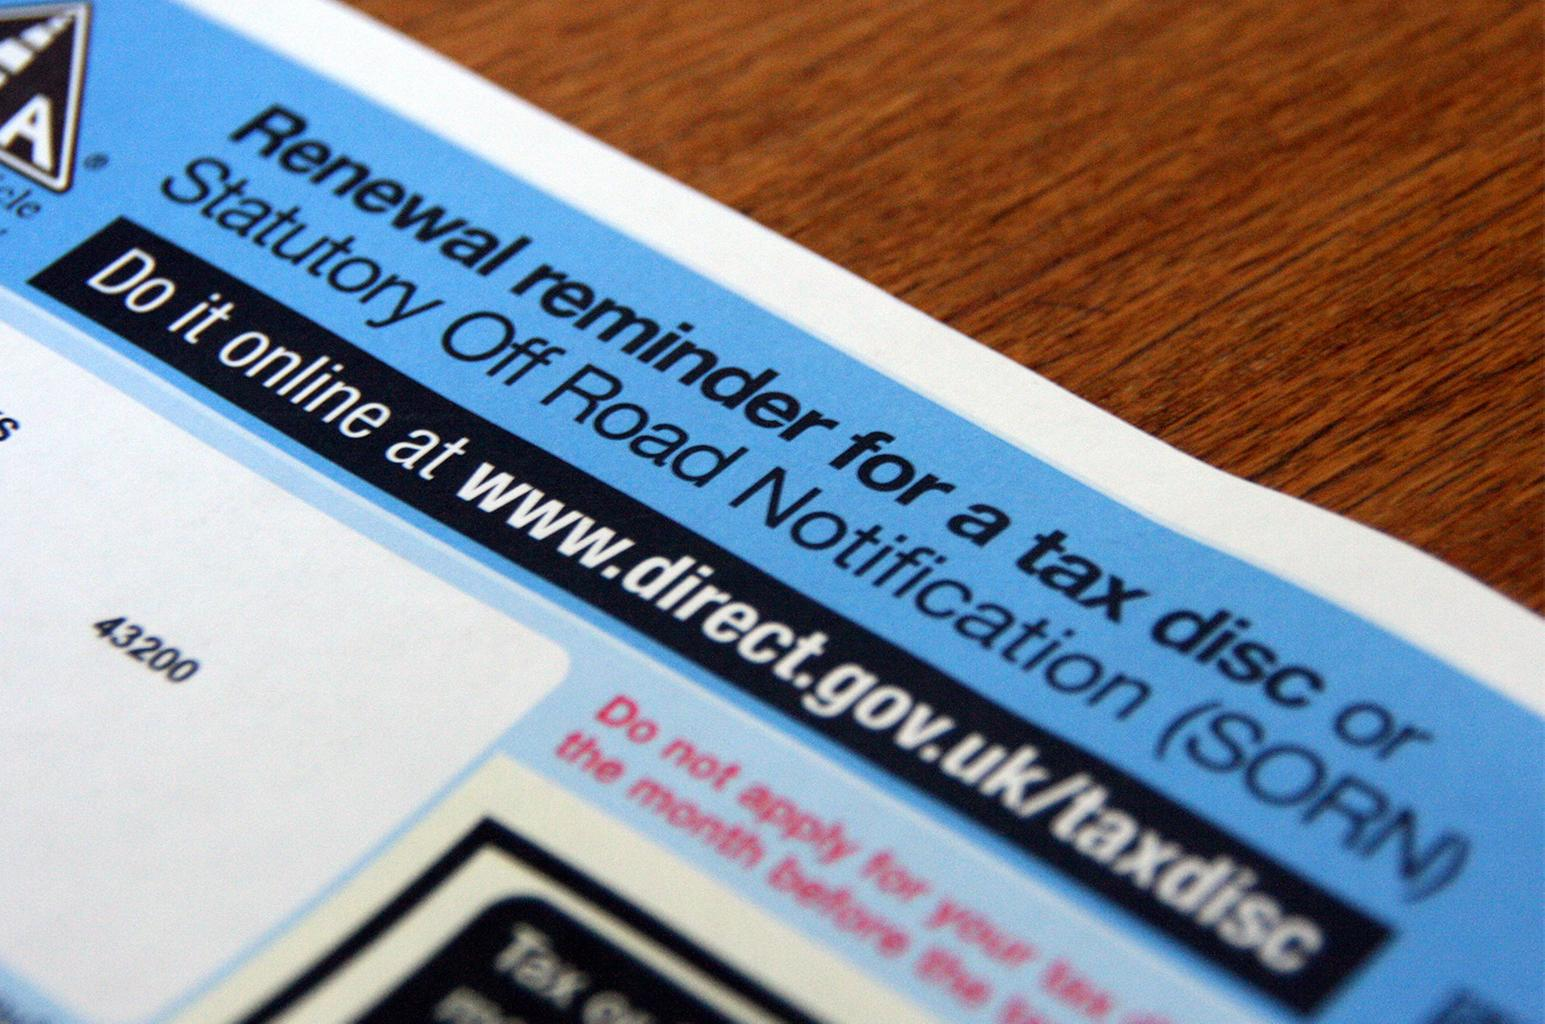 Surge in road tax evasion could cost more than £100m a year